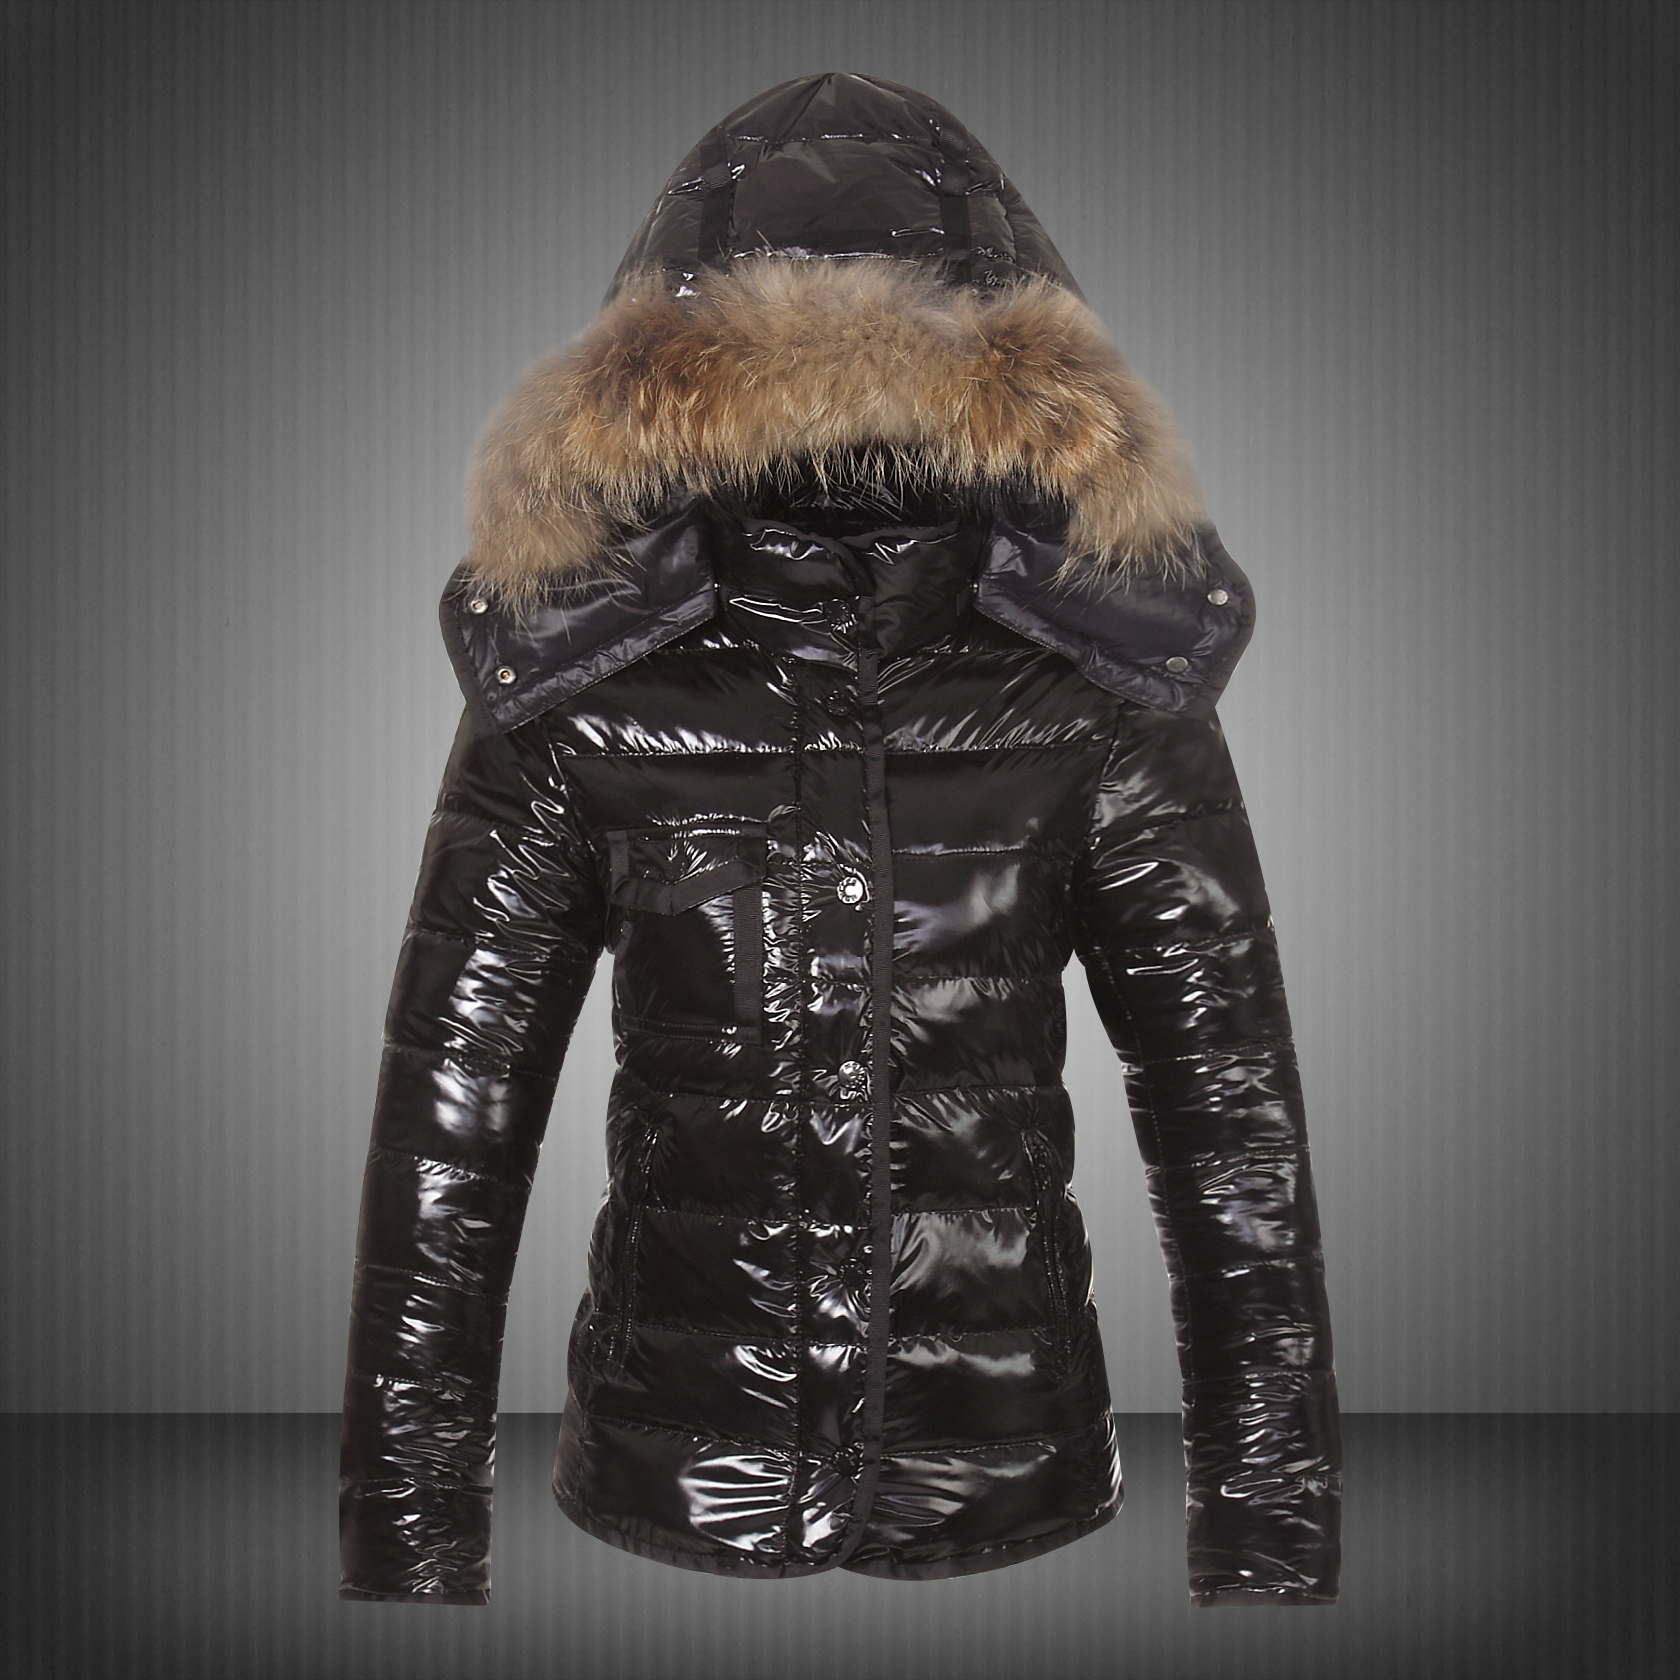 New Moncler Jackets For Women Black With Fur Cap UK